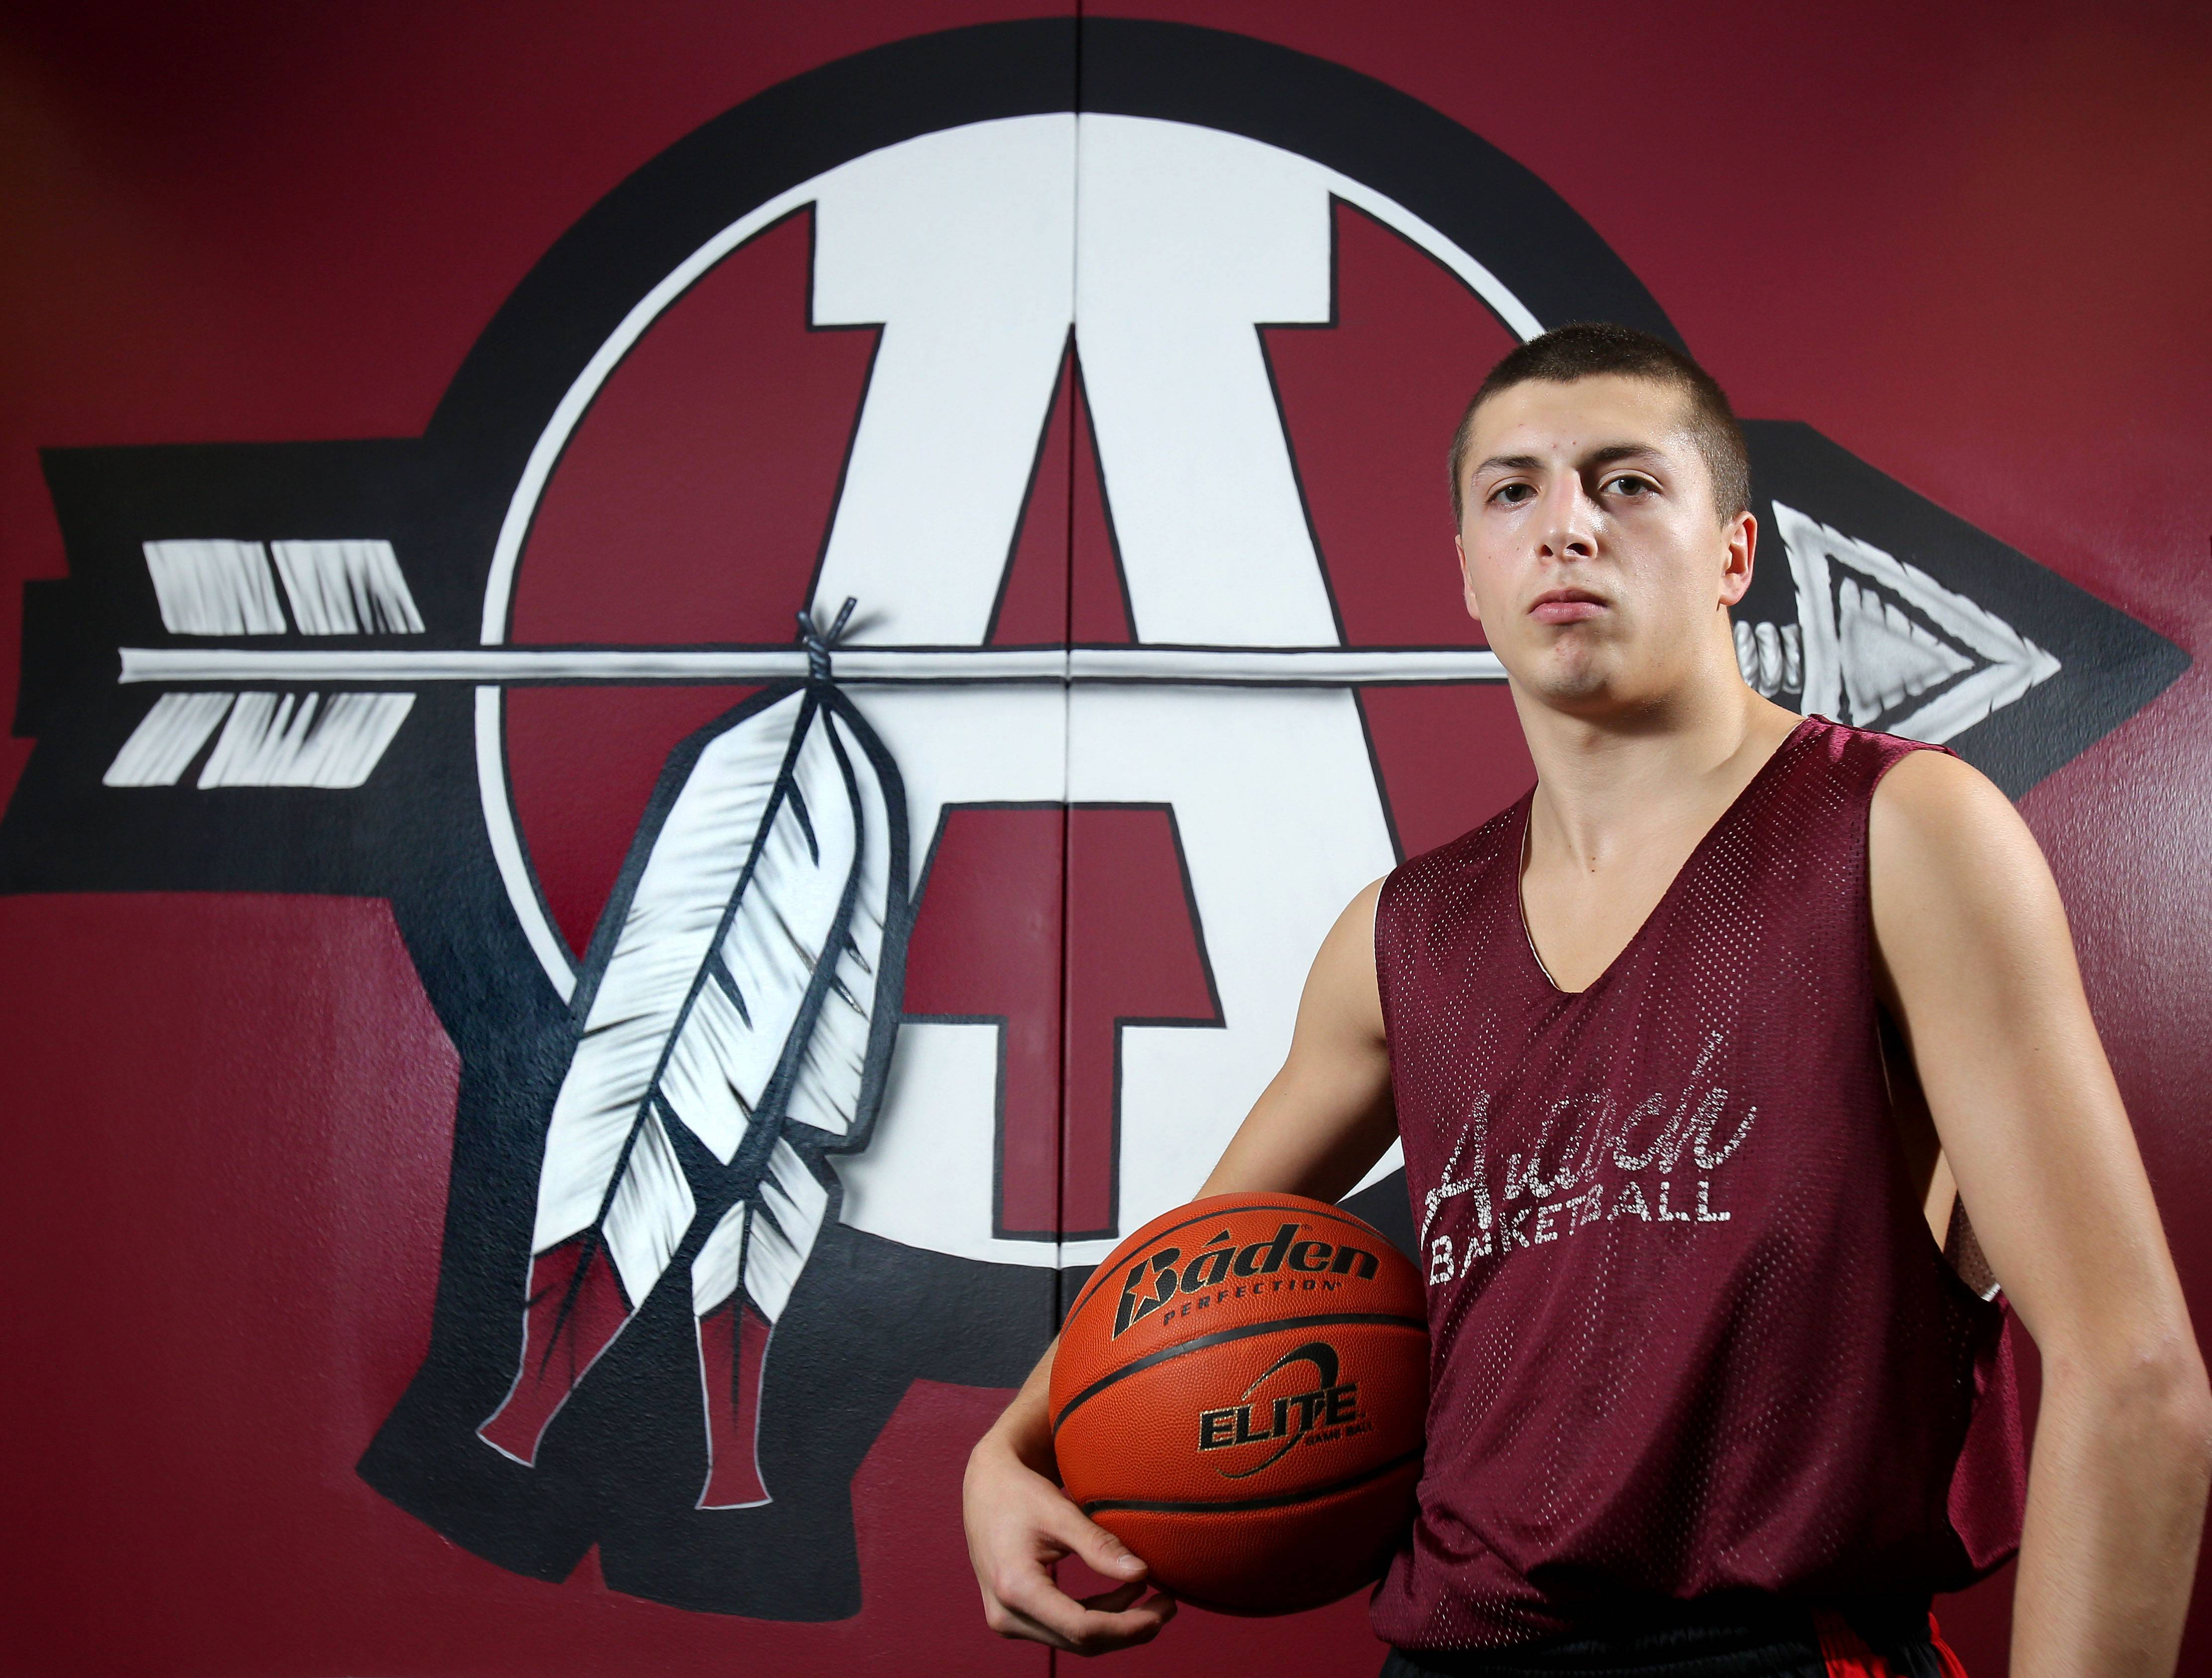 Antioch's AJ Marsiglio is a standout in basketball, helping direct the team with assists from his point guard position. He's also got his heart set on helping people fight cancer.